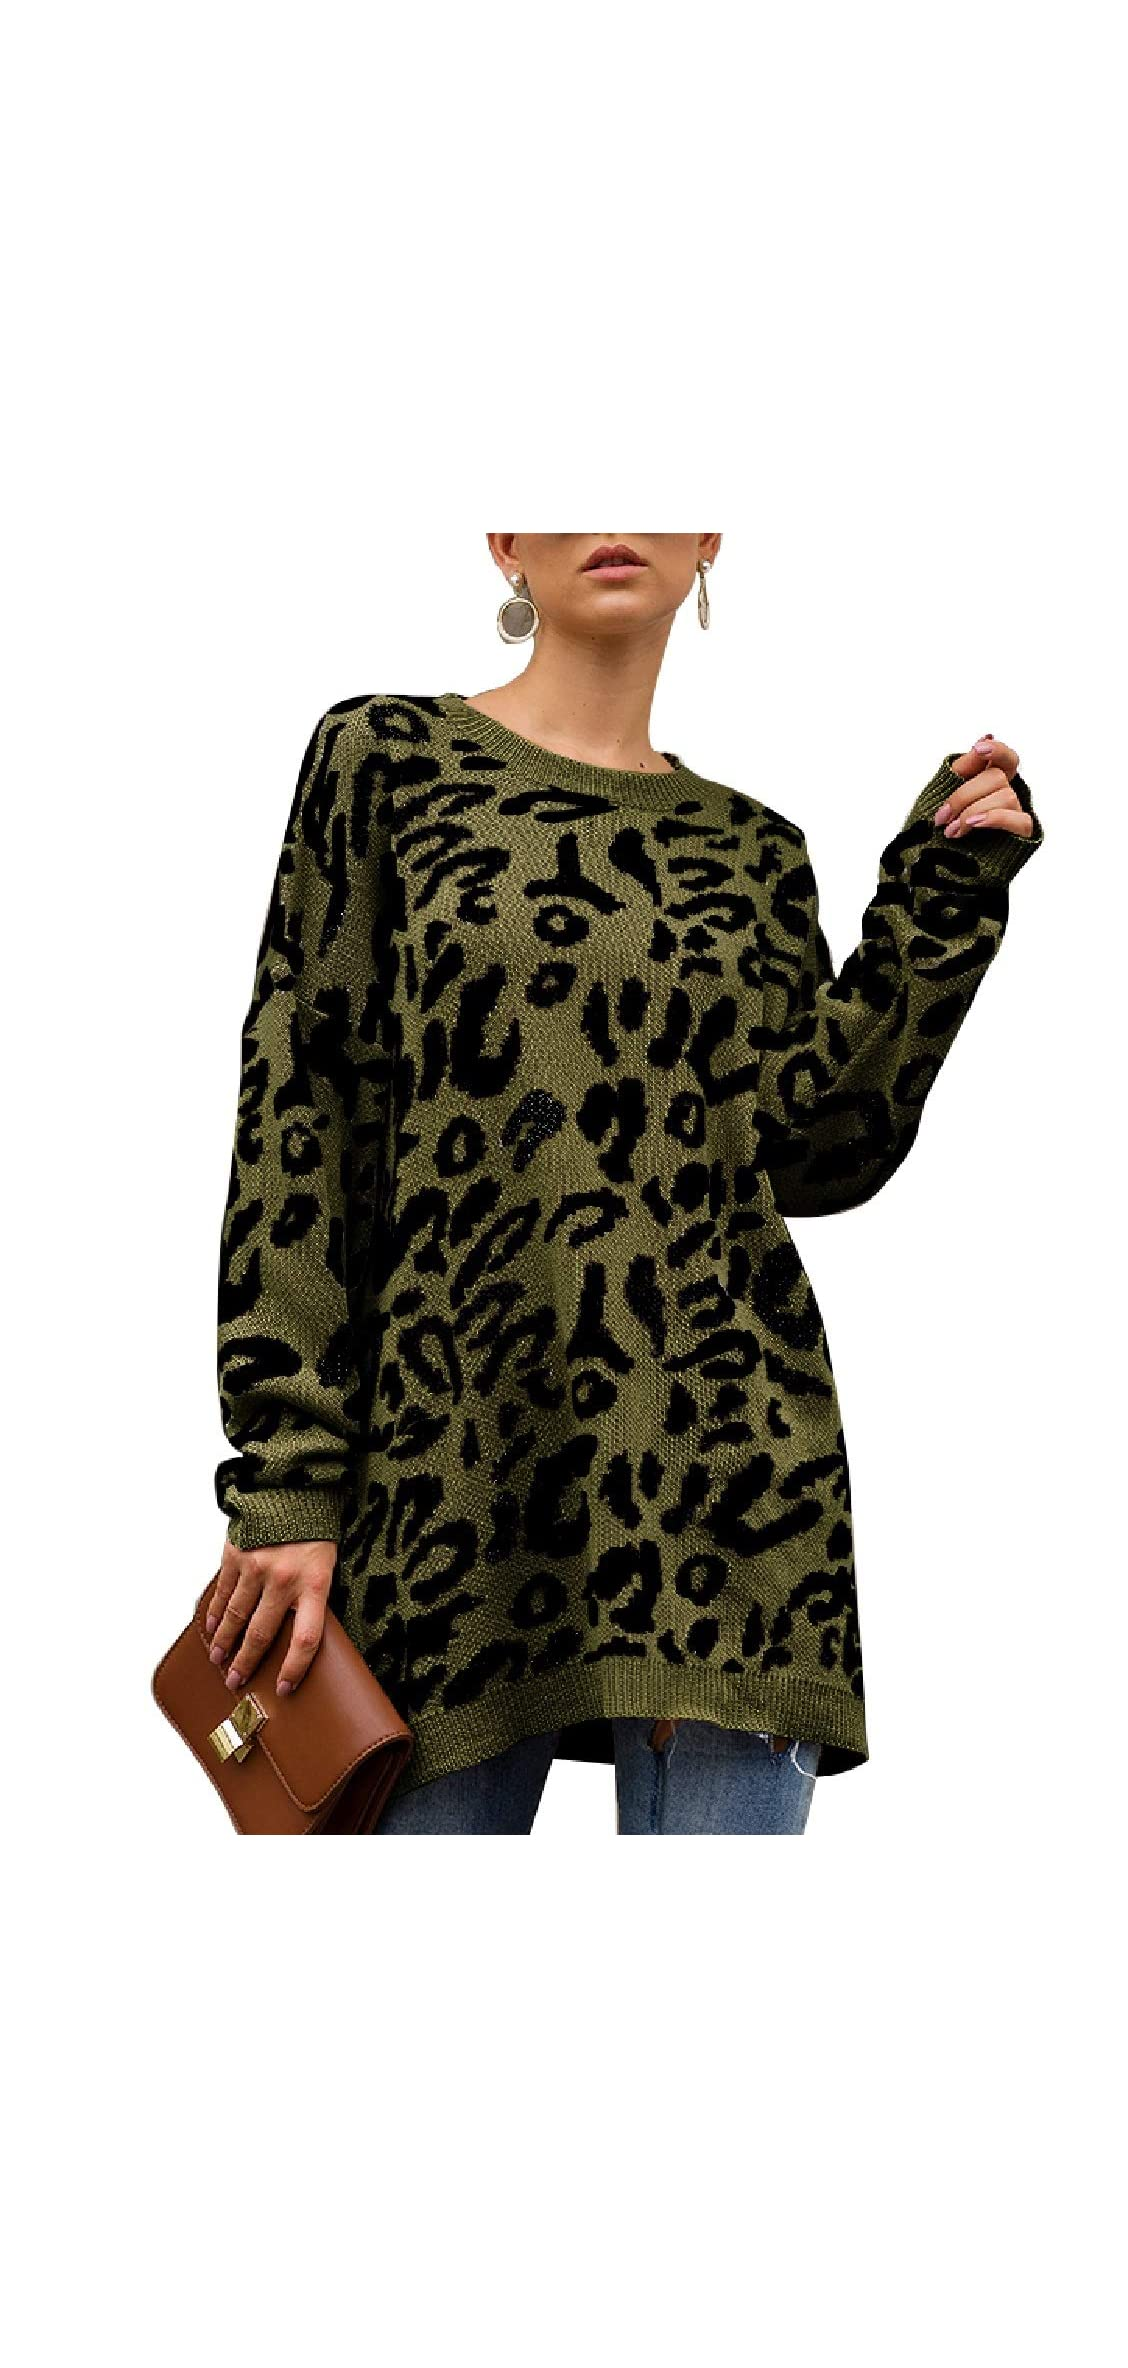 Womens Leopard Print Pullover Oversized Crew Neck Casual